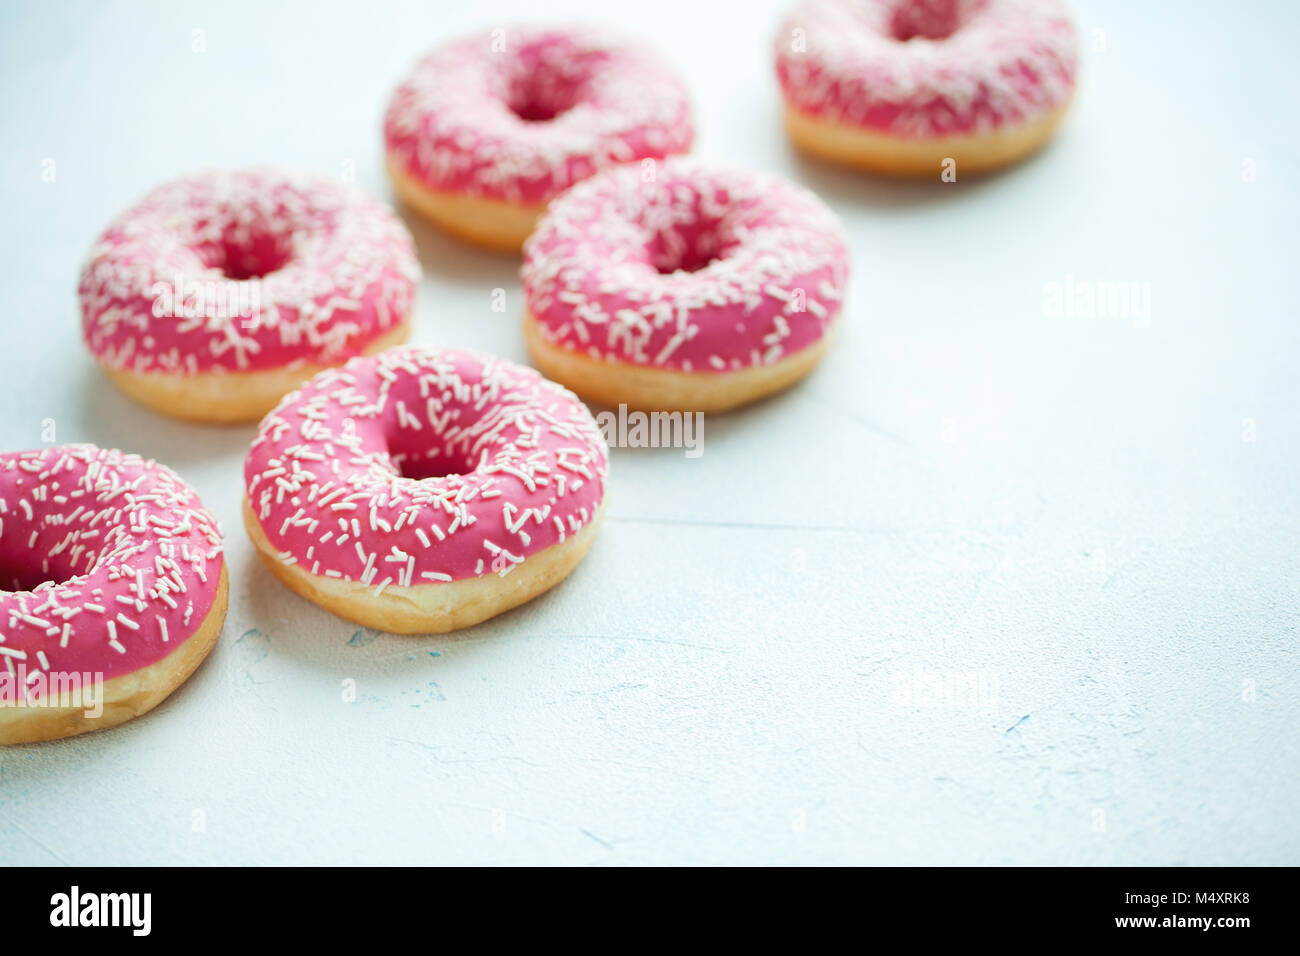 Donut. Sweet icing sugar food. Dessert colorful snack.Treat from delicious pastry breakfast. Bakery cake. Doughnut - Stock Image